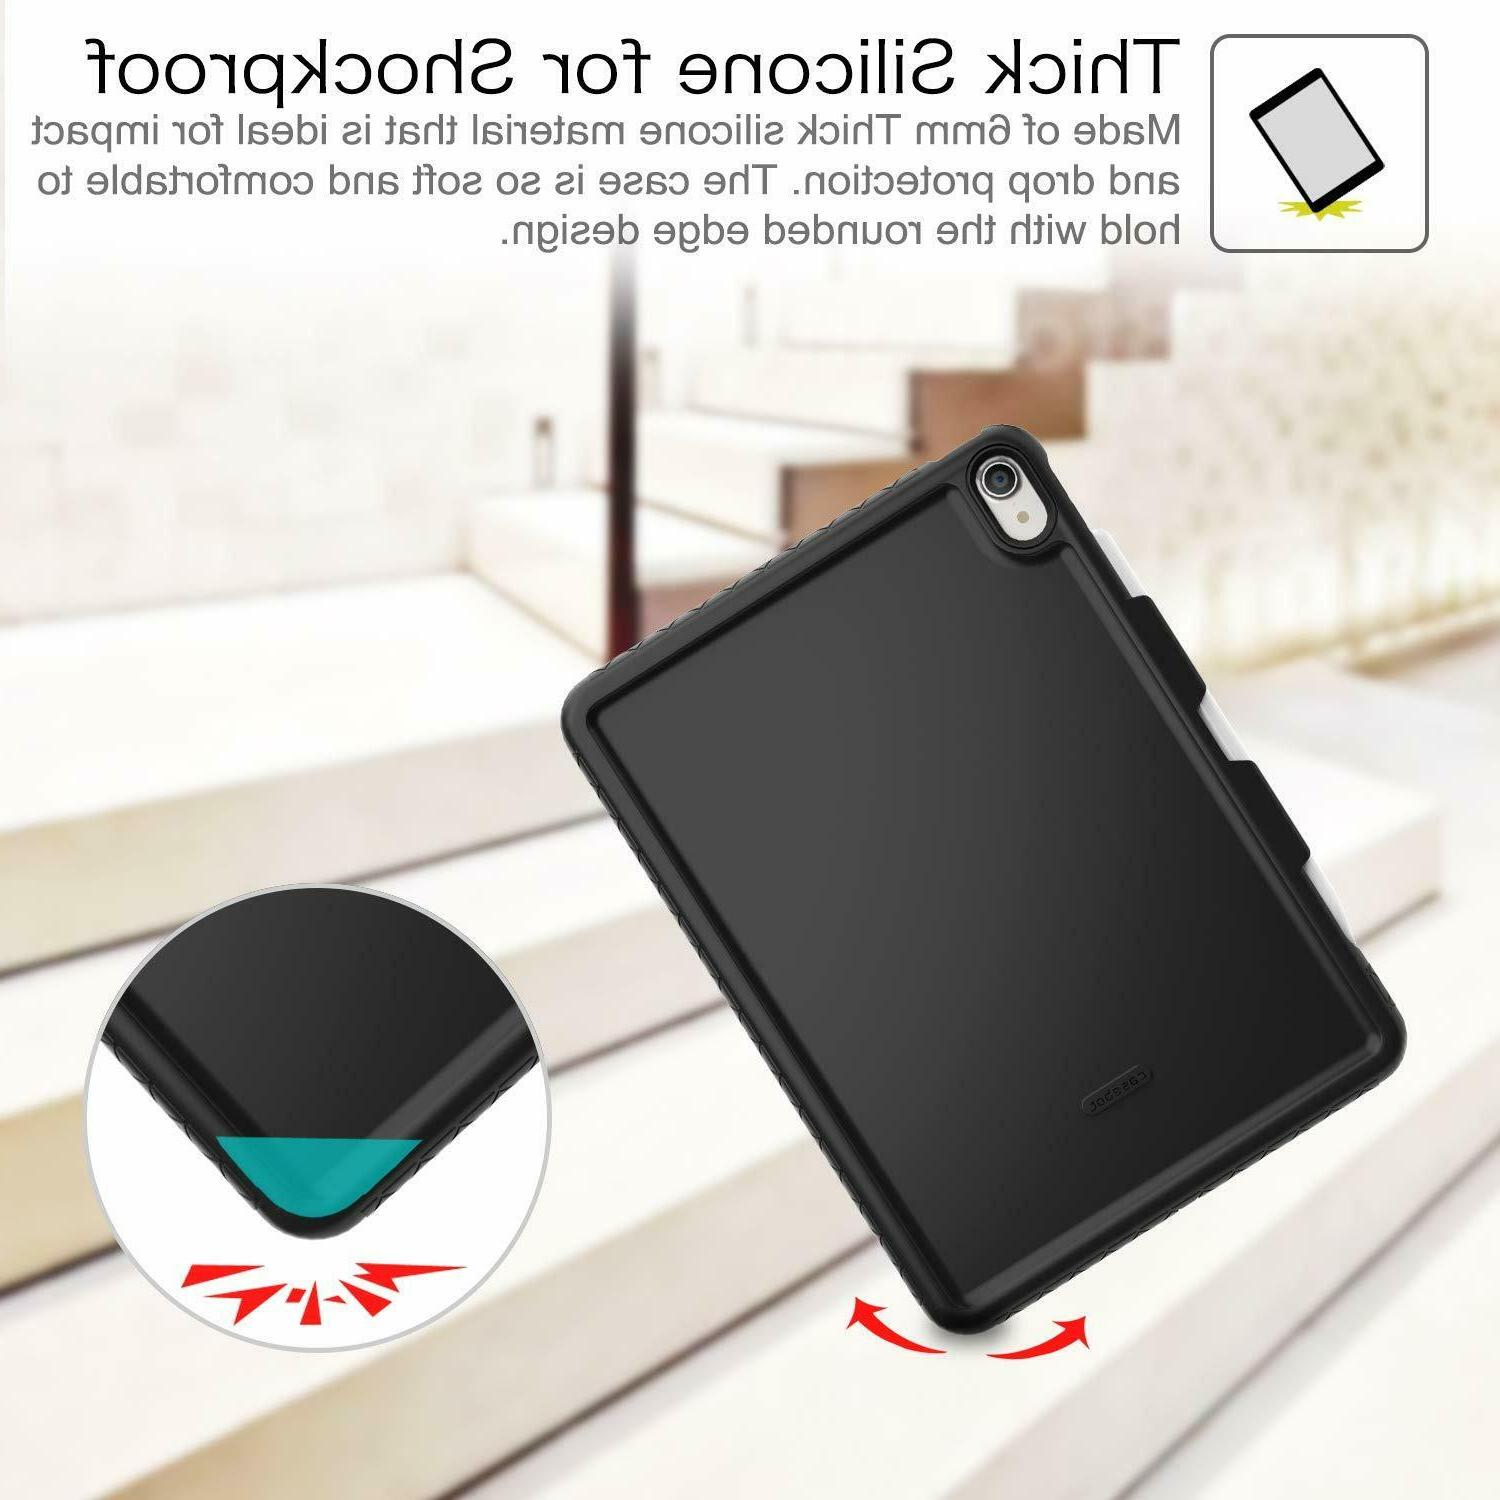 For iPad / Pro Gen 2018 Silicone Shock Proof Back Cover